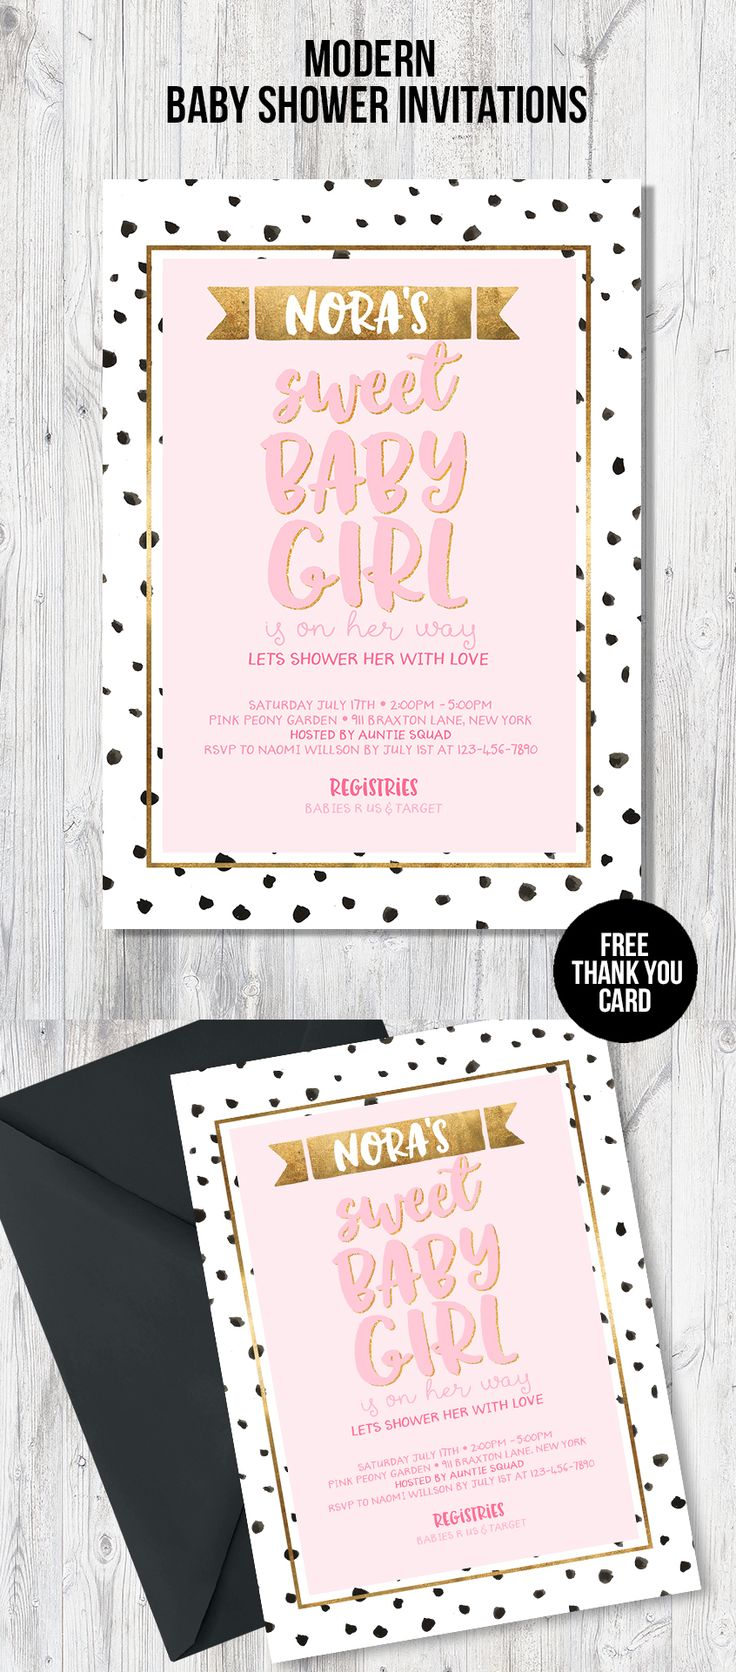 bridal shower invitations registry etiquette%0A Baby shower invitation for your DIY baby shower  We offer matching party  decorations and games